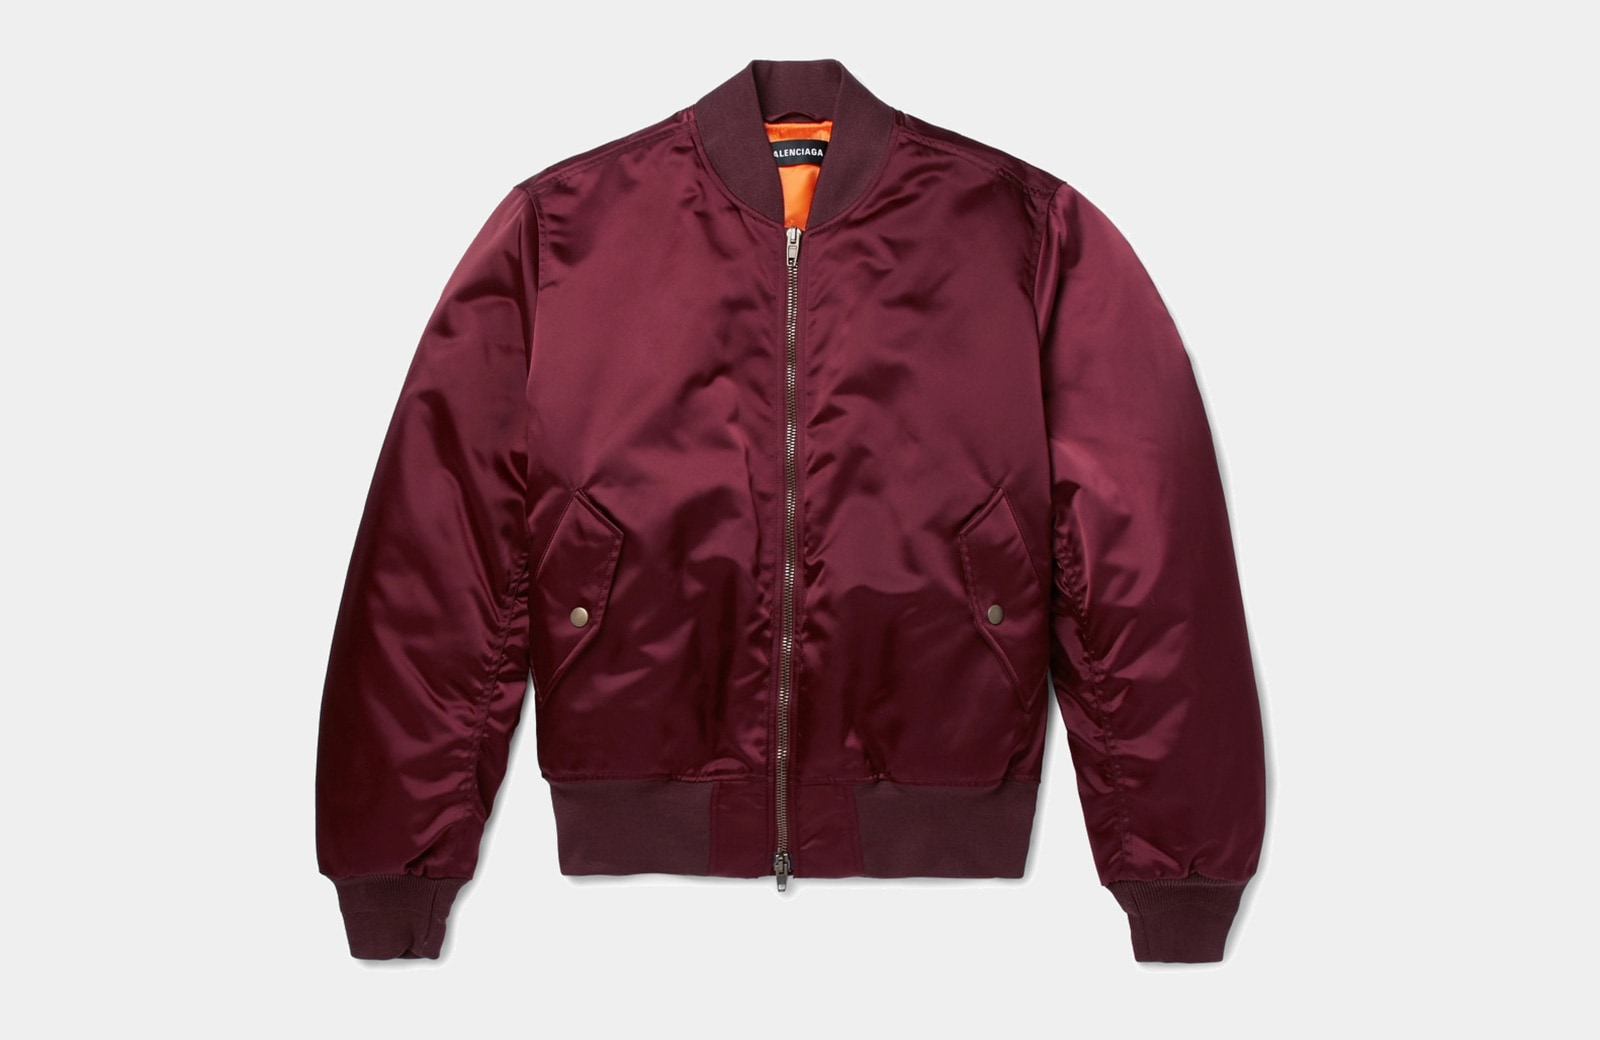 best burgundy bomber jacket men Balenciaga luxury style - Luxe Digital